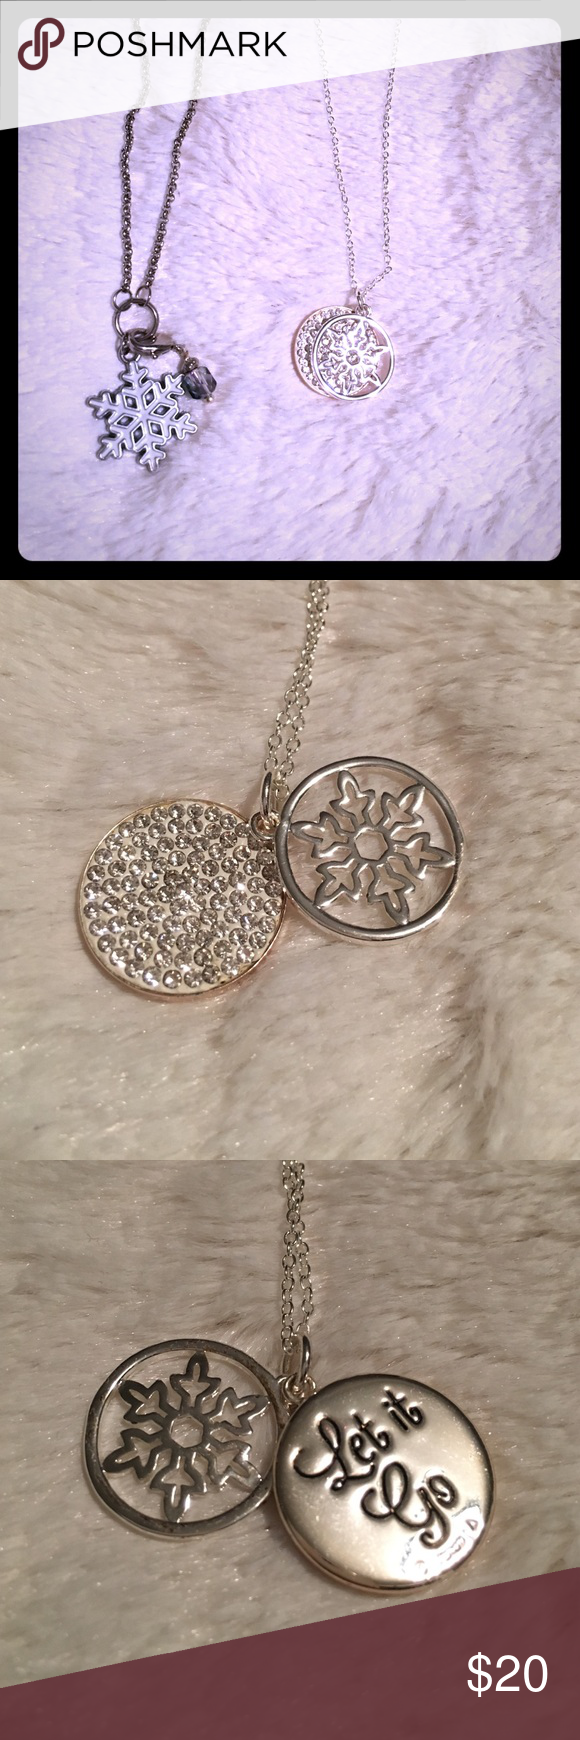 """Set of Disney Frozen Necklaces - GUC Set of two Disney Frozen necklaces. The """"let it go"""" necklace is from the Disney Kohl's collection. The enamel snowflake with blue charm is from a boutique, and is handmade. Both necklaces included in the price of this listing. Make sure to check out my closet for other great finds! Disney Jewelry Necklaces"""